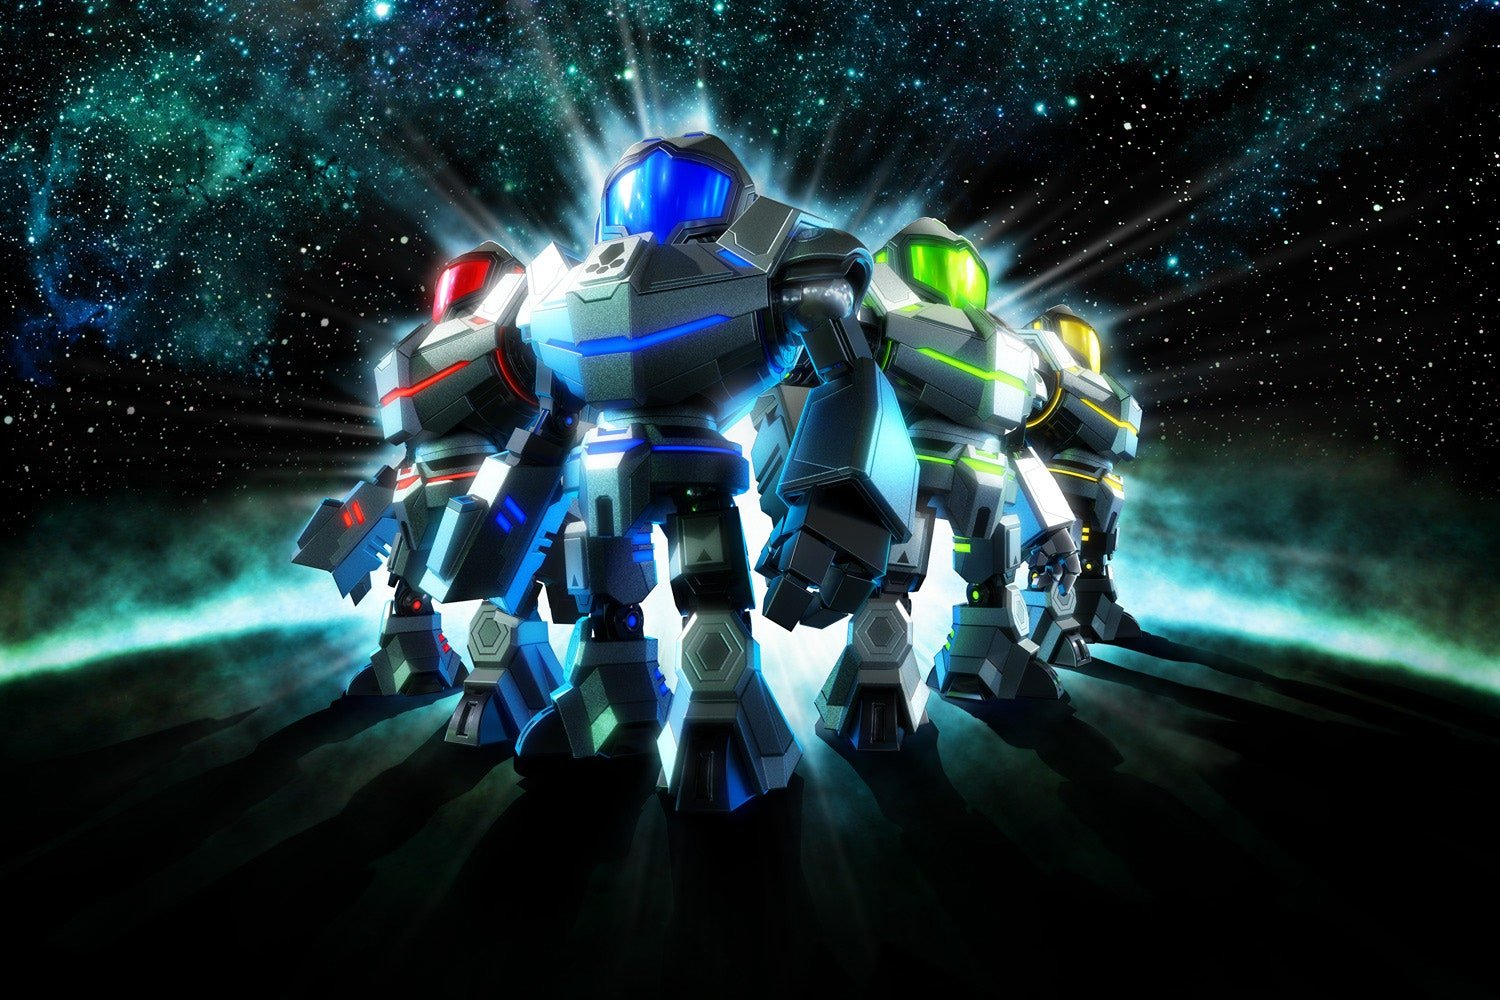 Federation Force Feature - image courtesy of WIRED